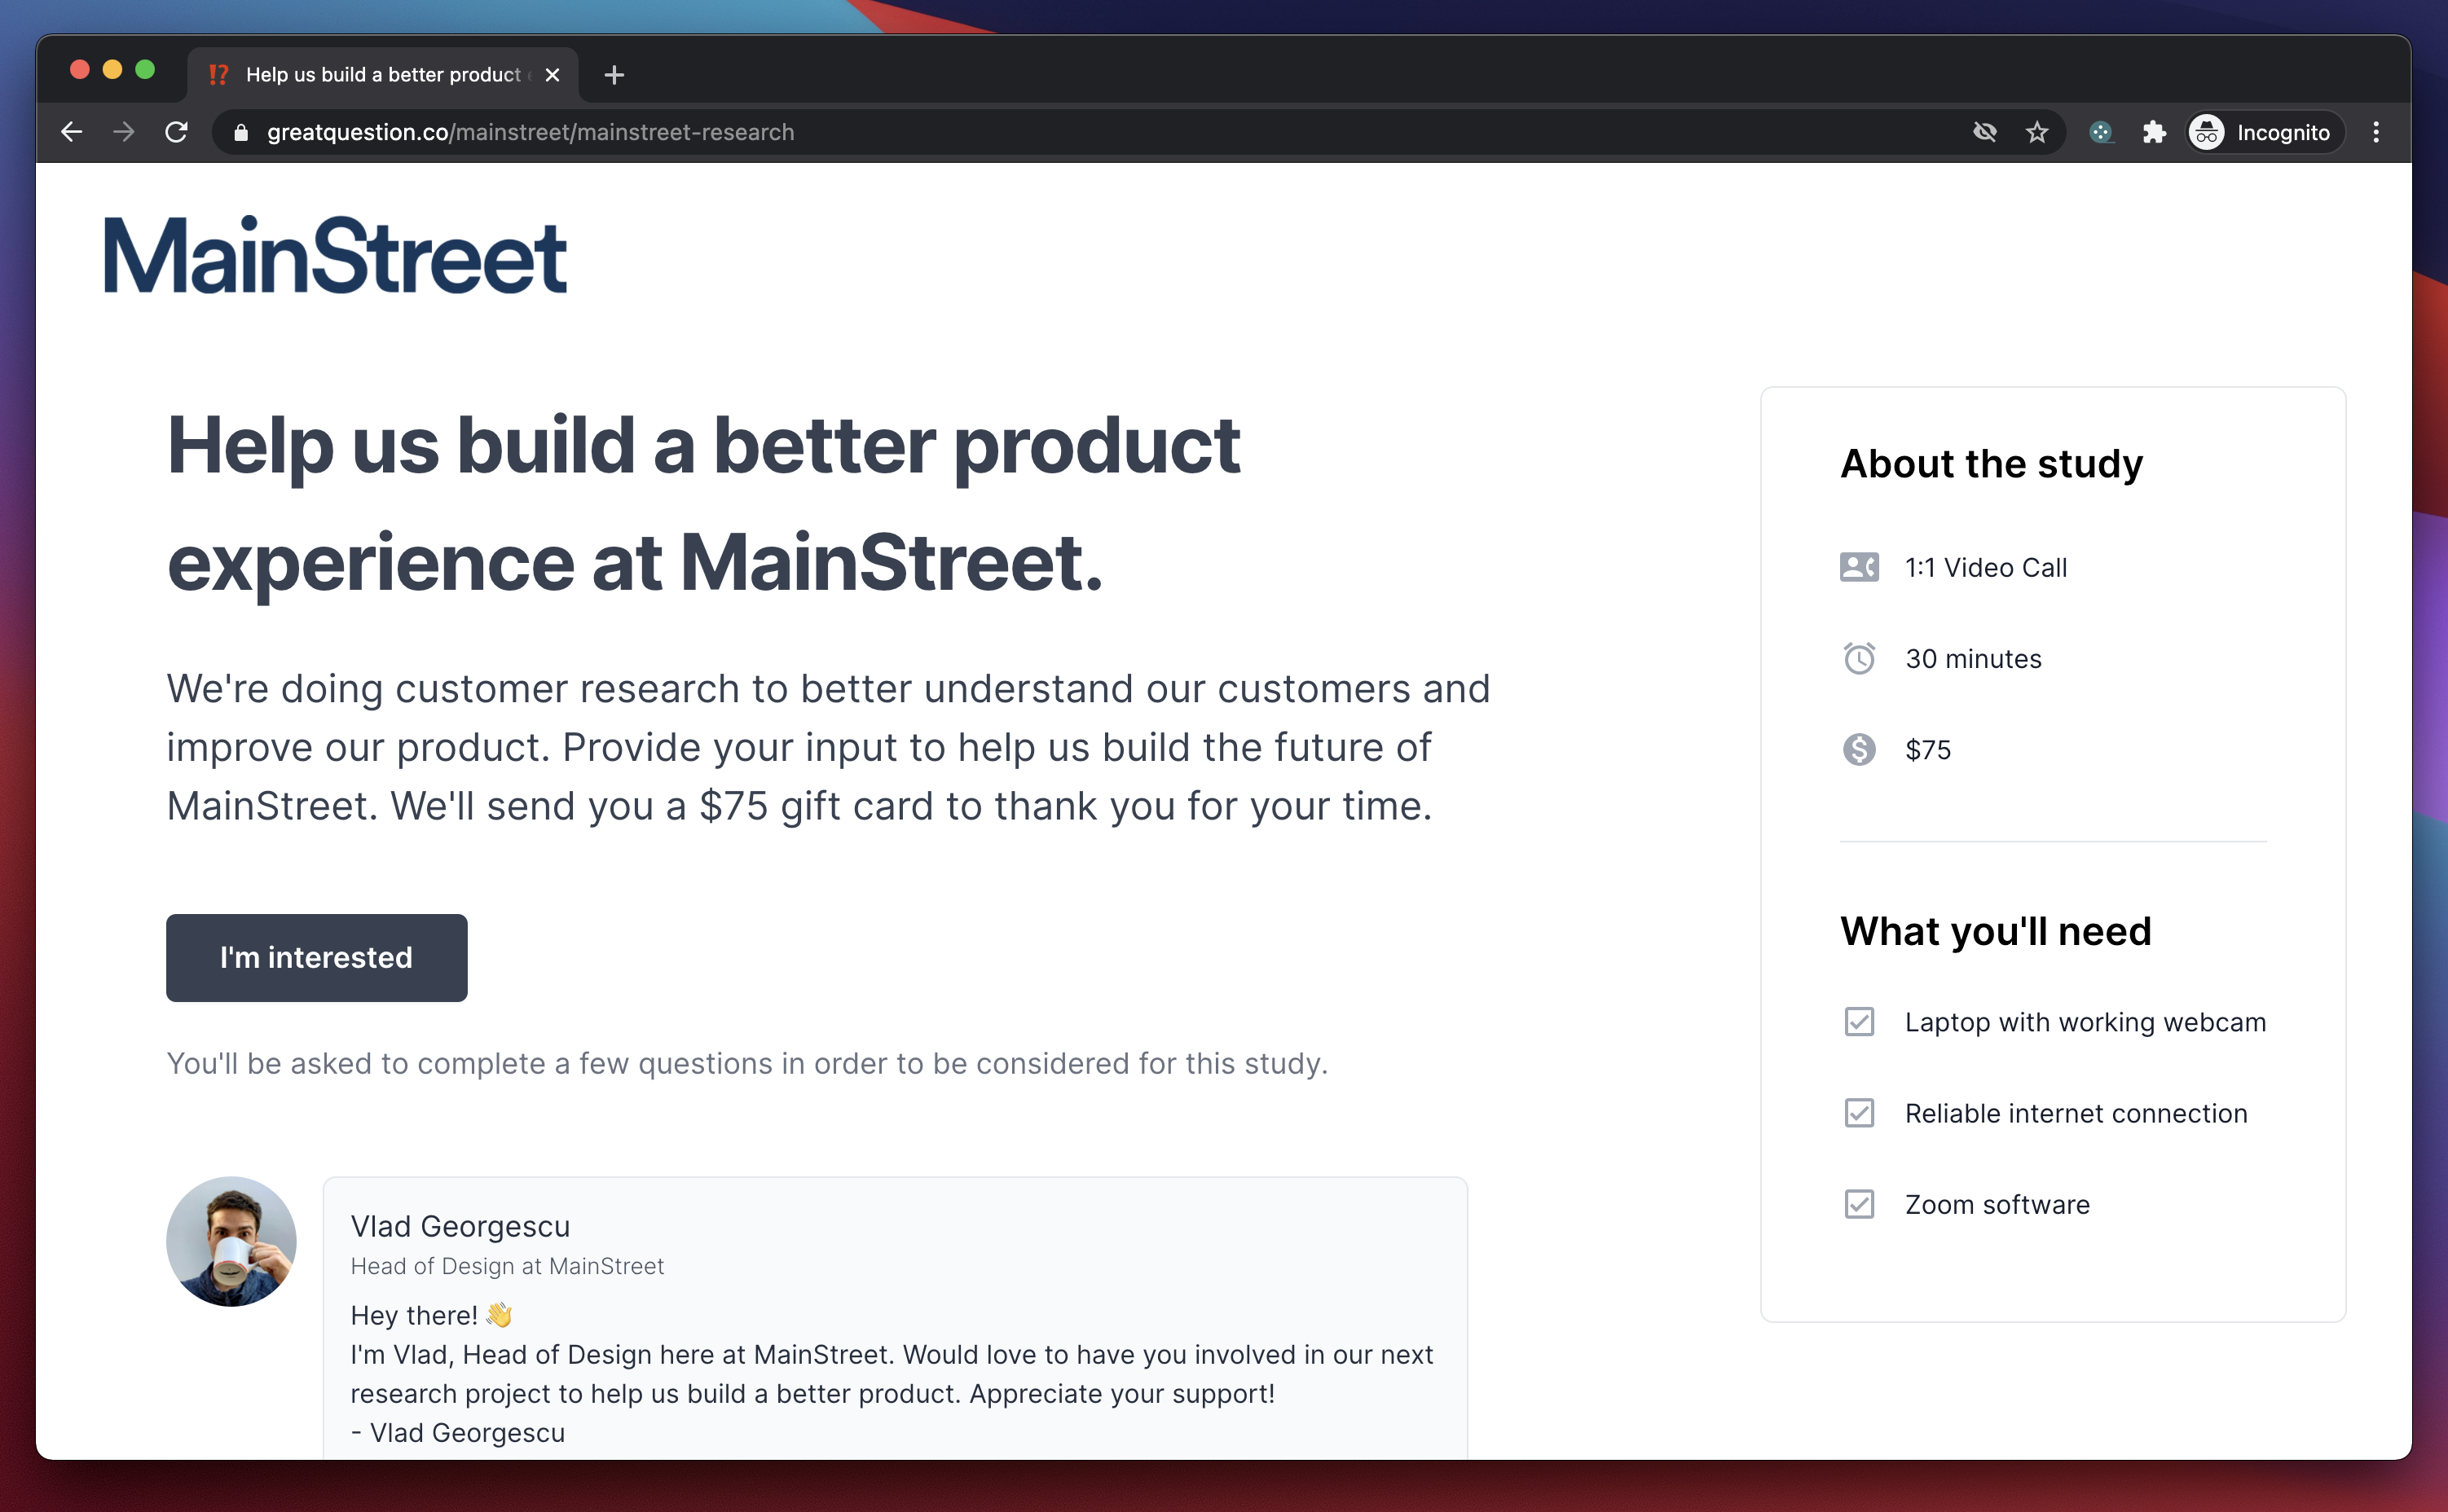 A landing page created for MainStreet consisting of Great Question's user studying platform